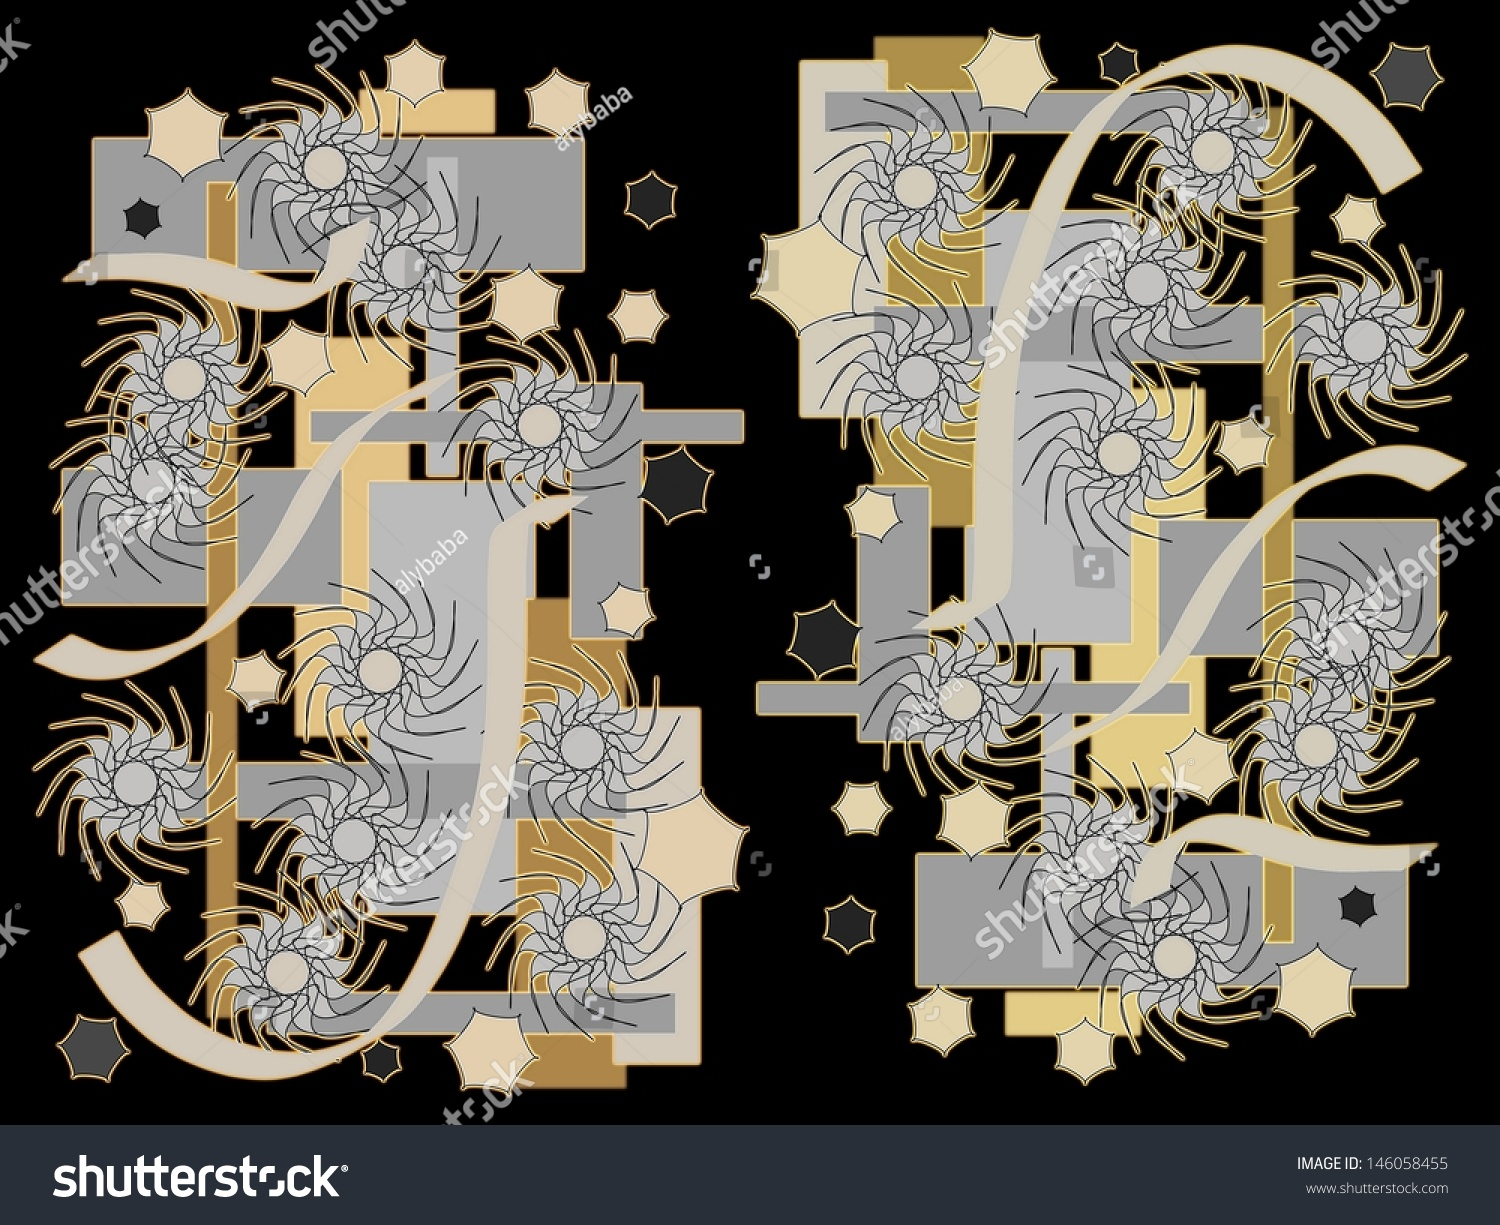 Bright Colorful Modern Abstract Design With Geometric And Floral Motifs  Superimposed On A Black Background To